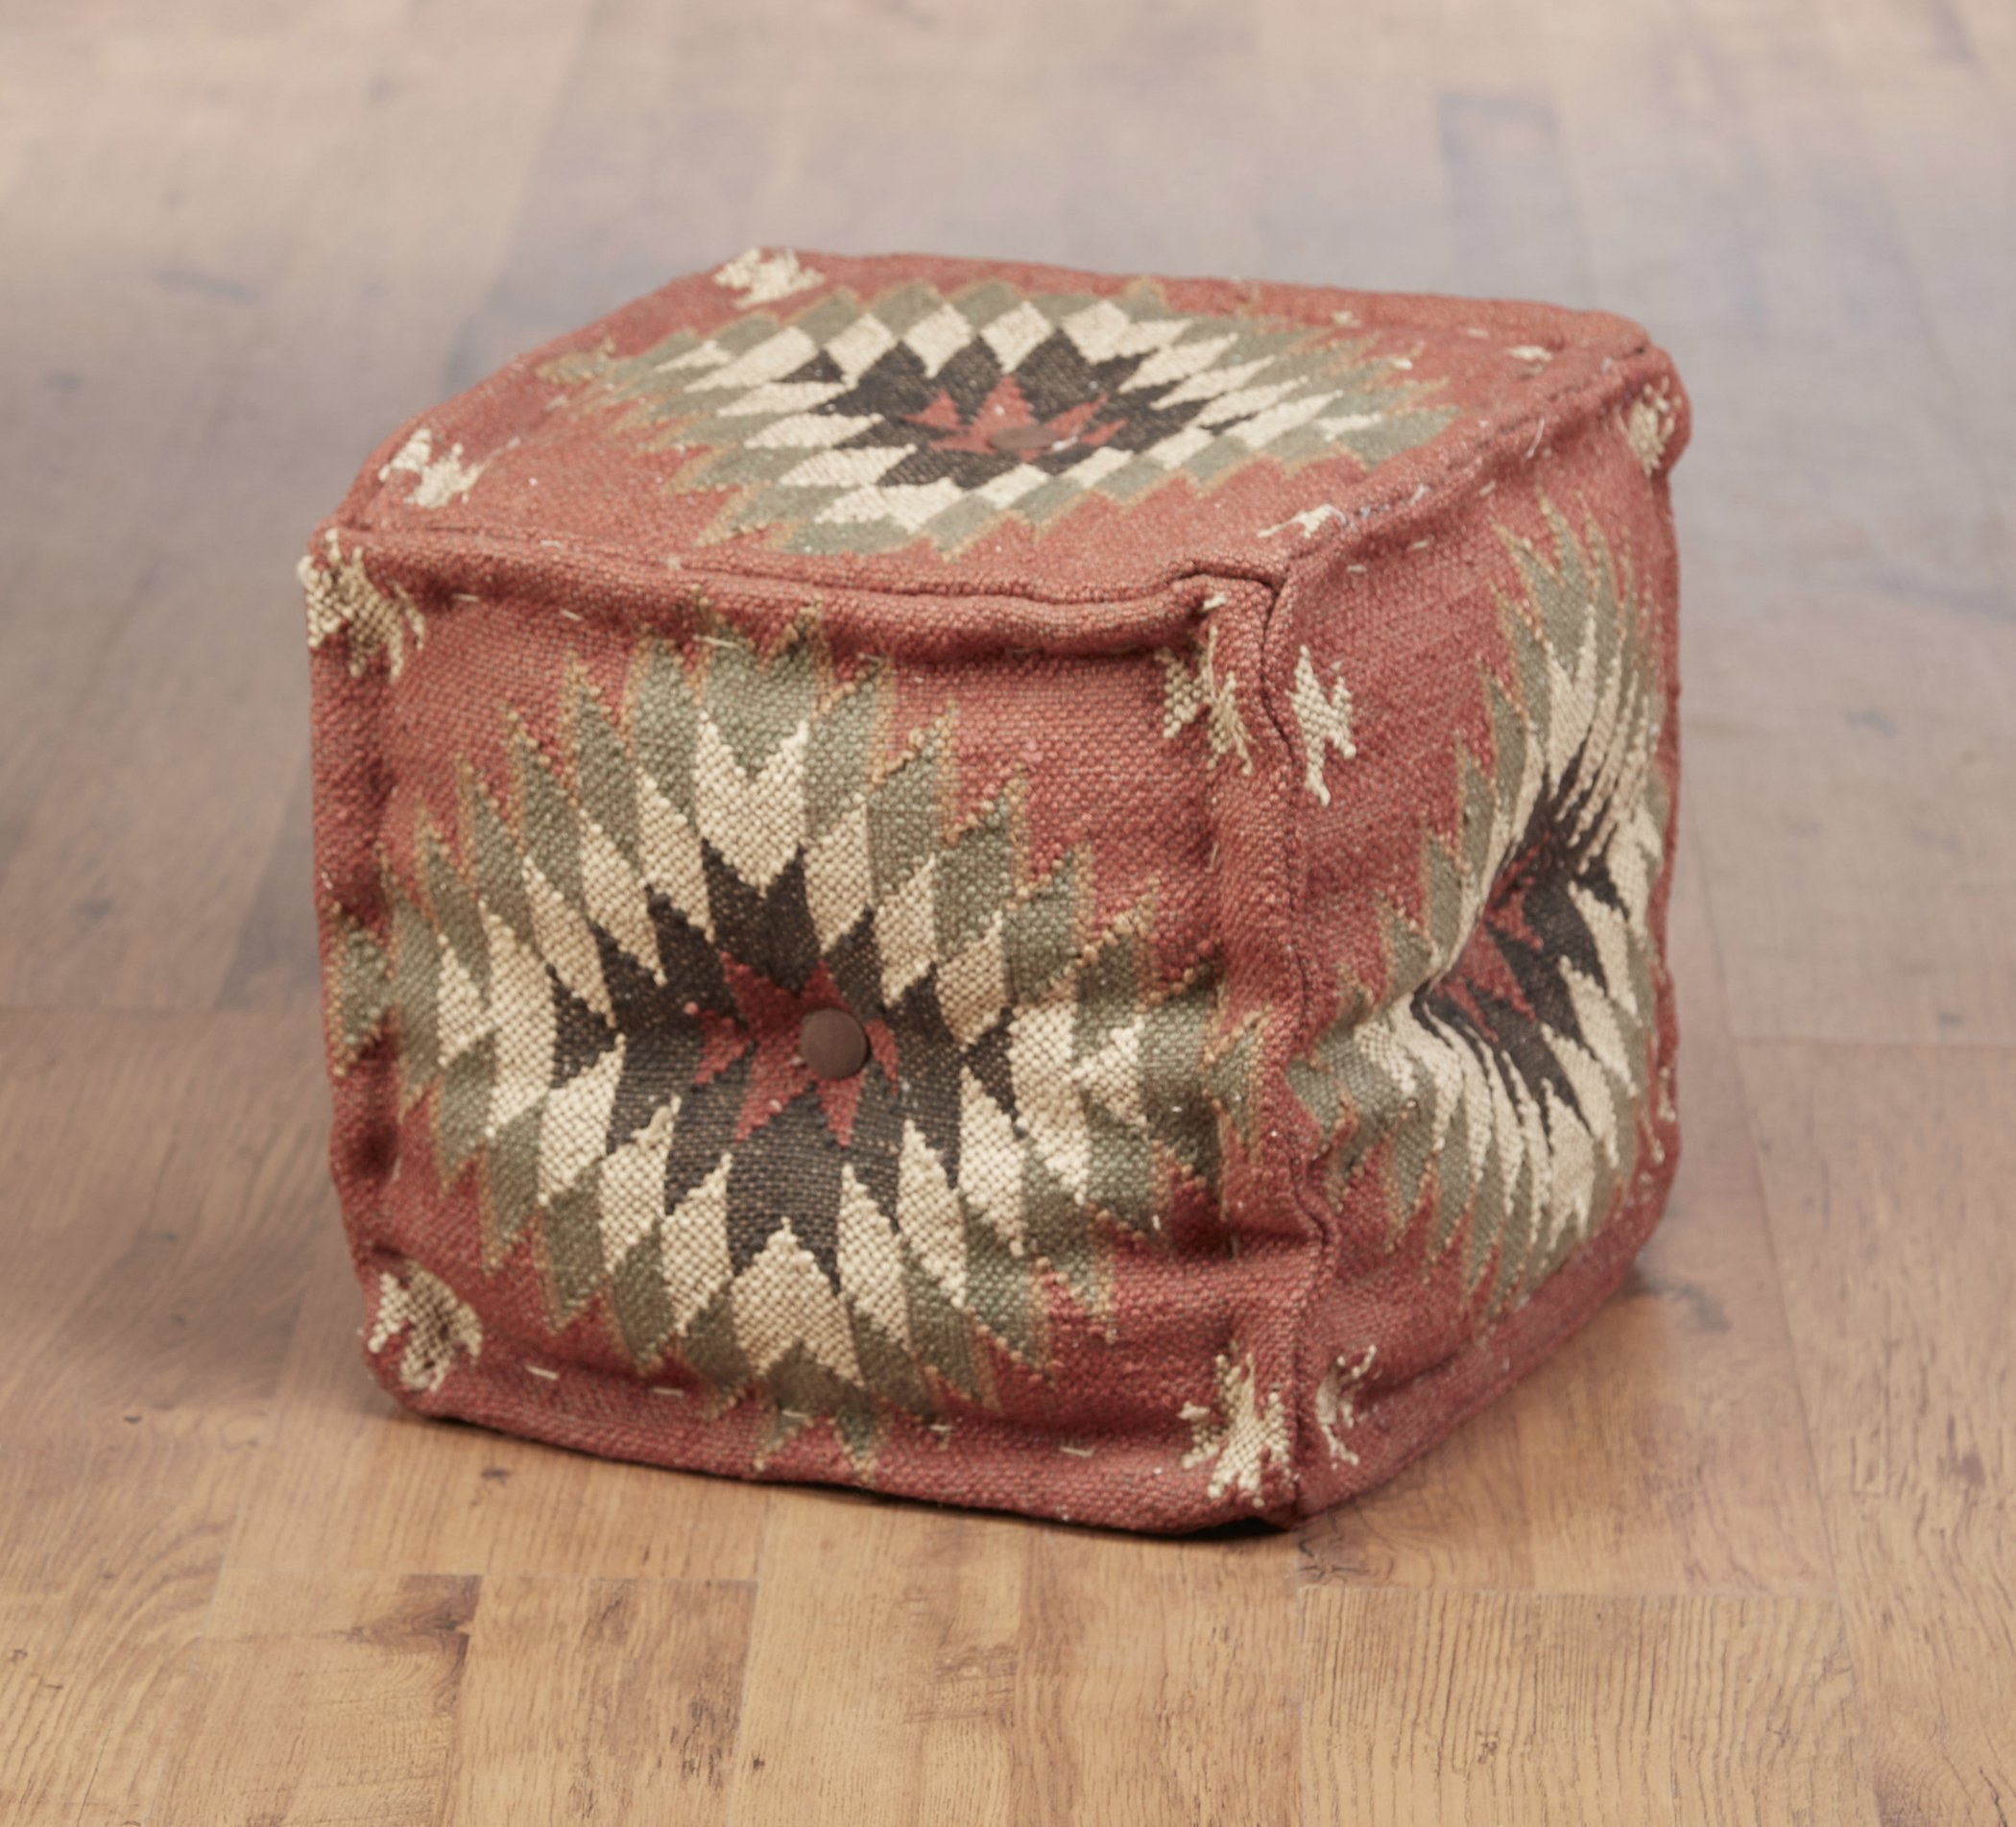 Wool Ottomans Aa Importing 48849 Square Kilim Pouf 16 X 17 X 17 Inches Multicolored Model # 48849